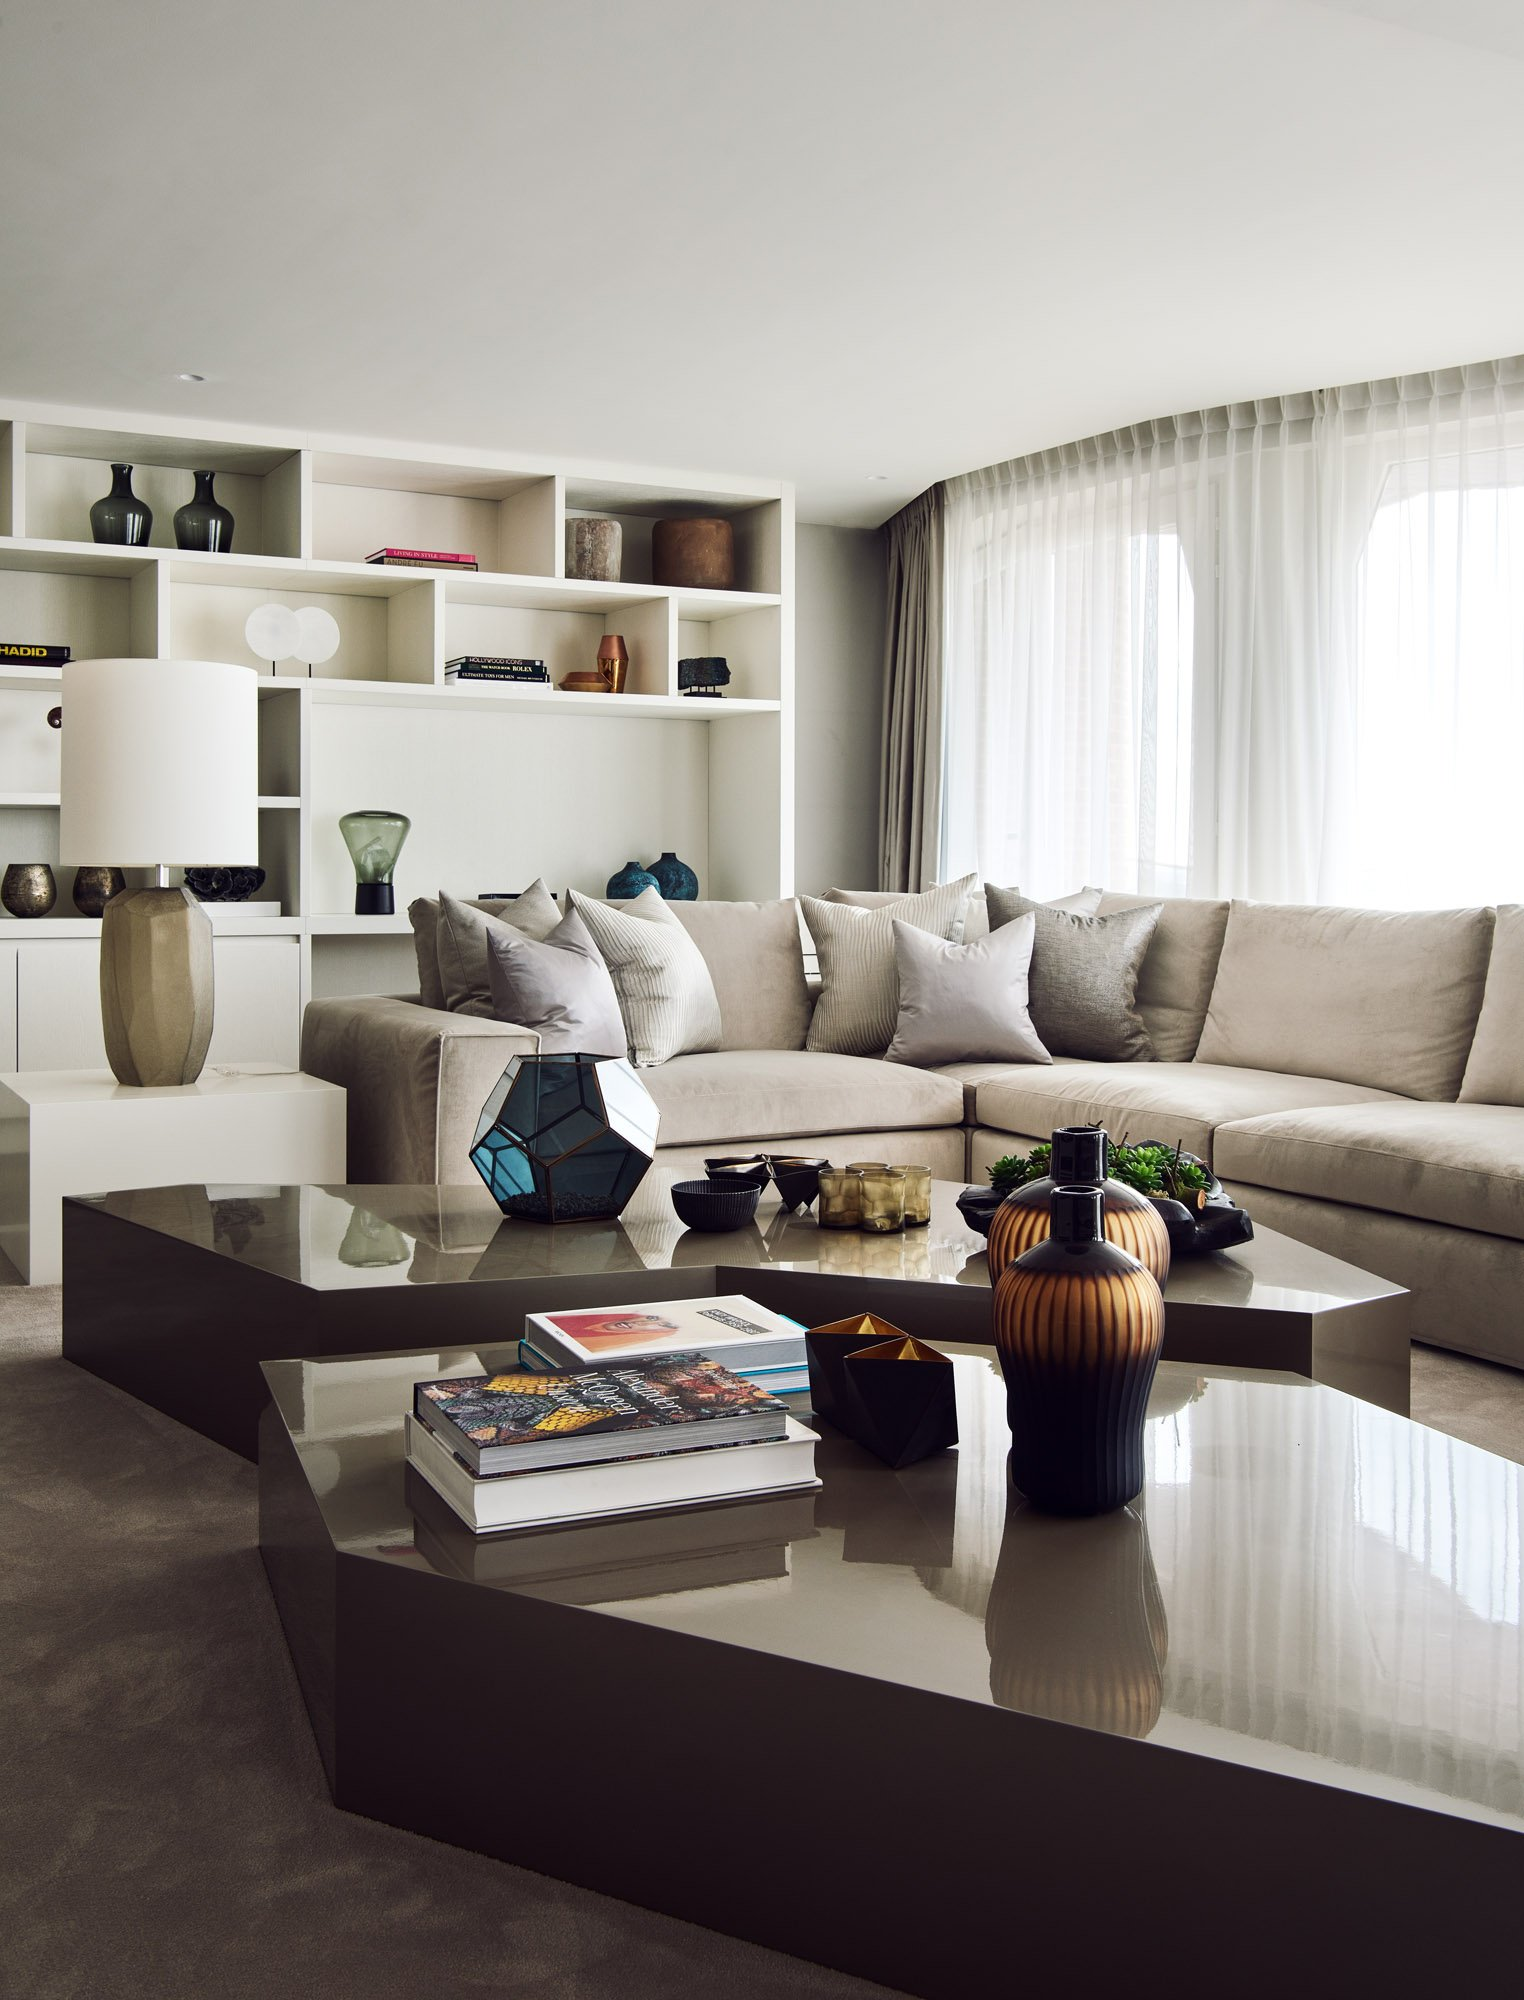 interior design apartment living room beige